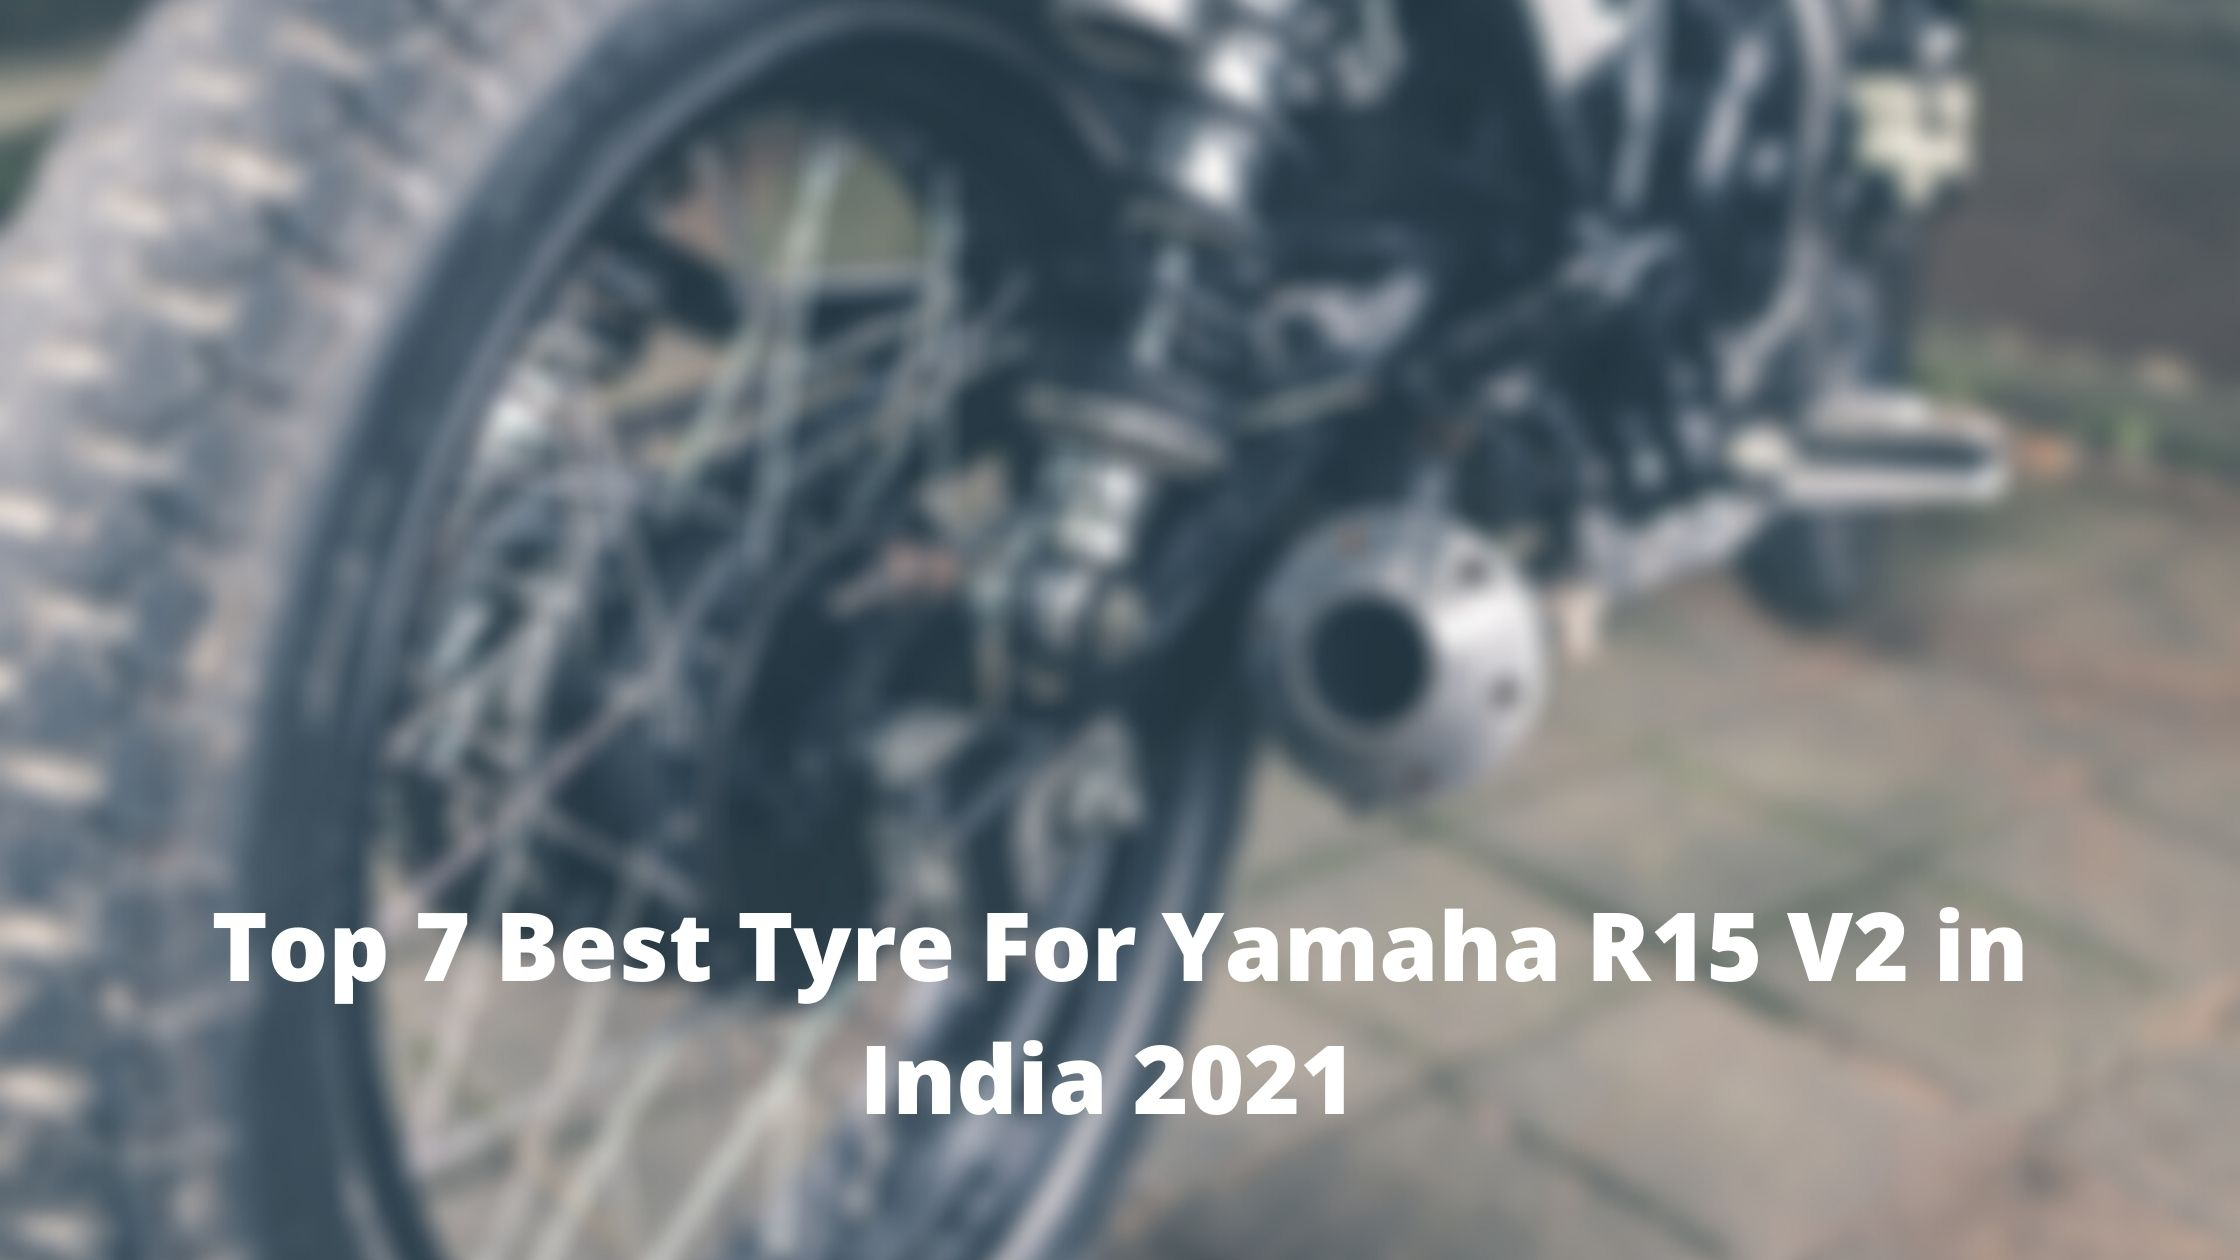 Now Top 7 Best Tyre For Yamaha R15 V2 in India 2021 [Bengali]